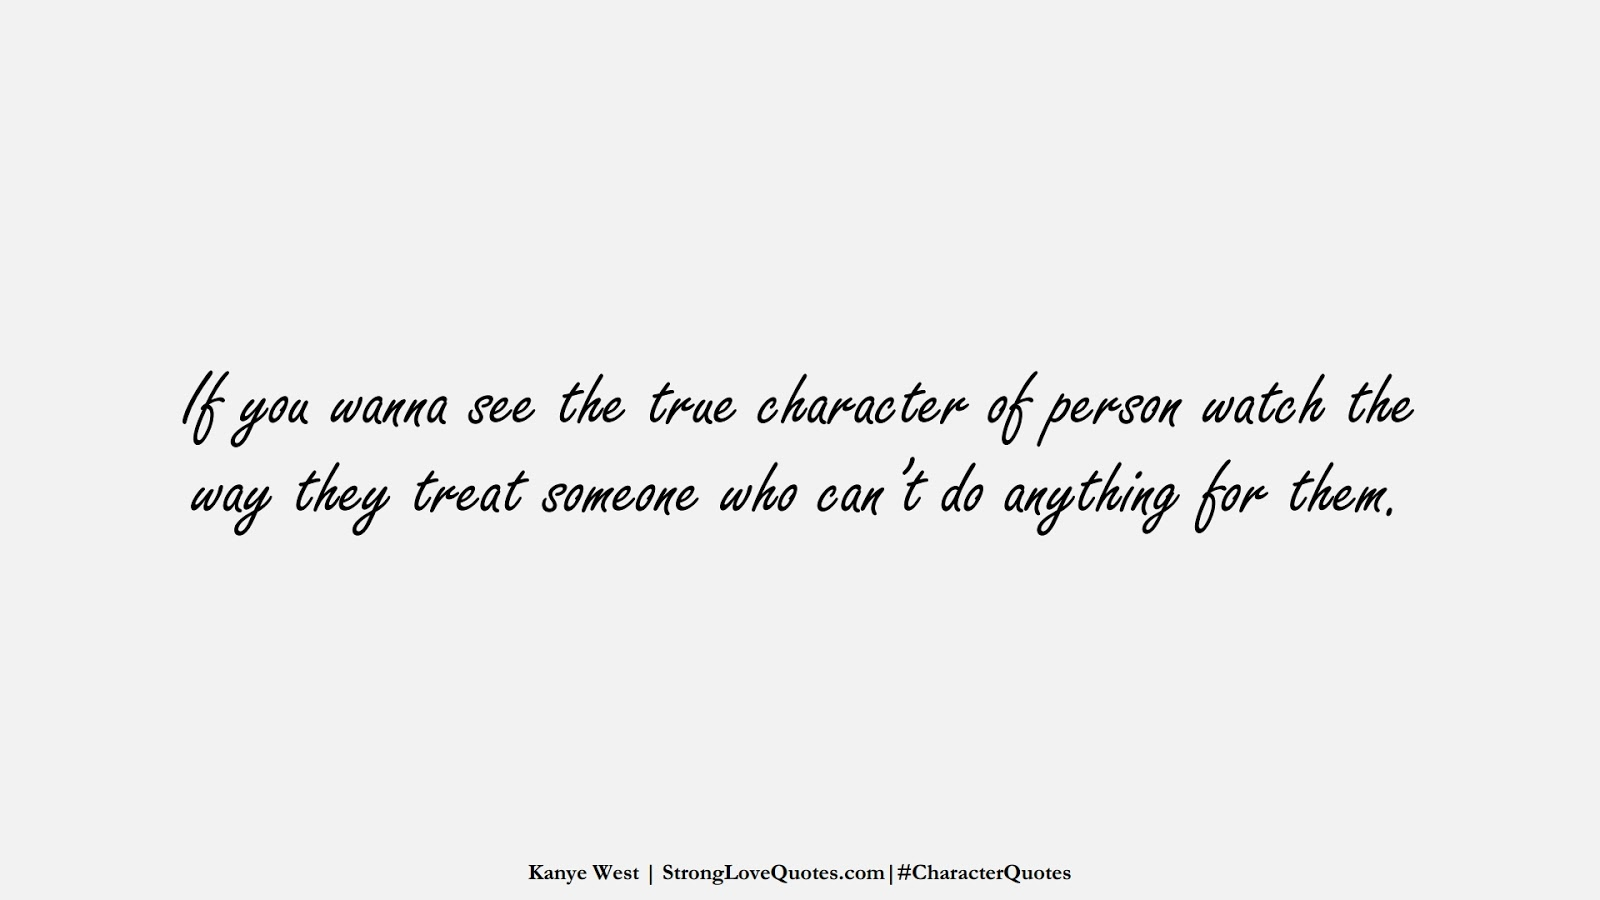 If you wanna see the true character of person watch the way they treat someone who can't do anything for them. (Kanye West);  #CharacterQuotes